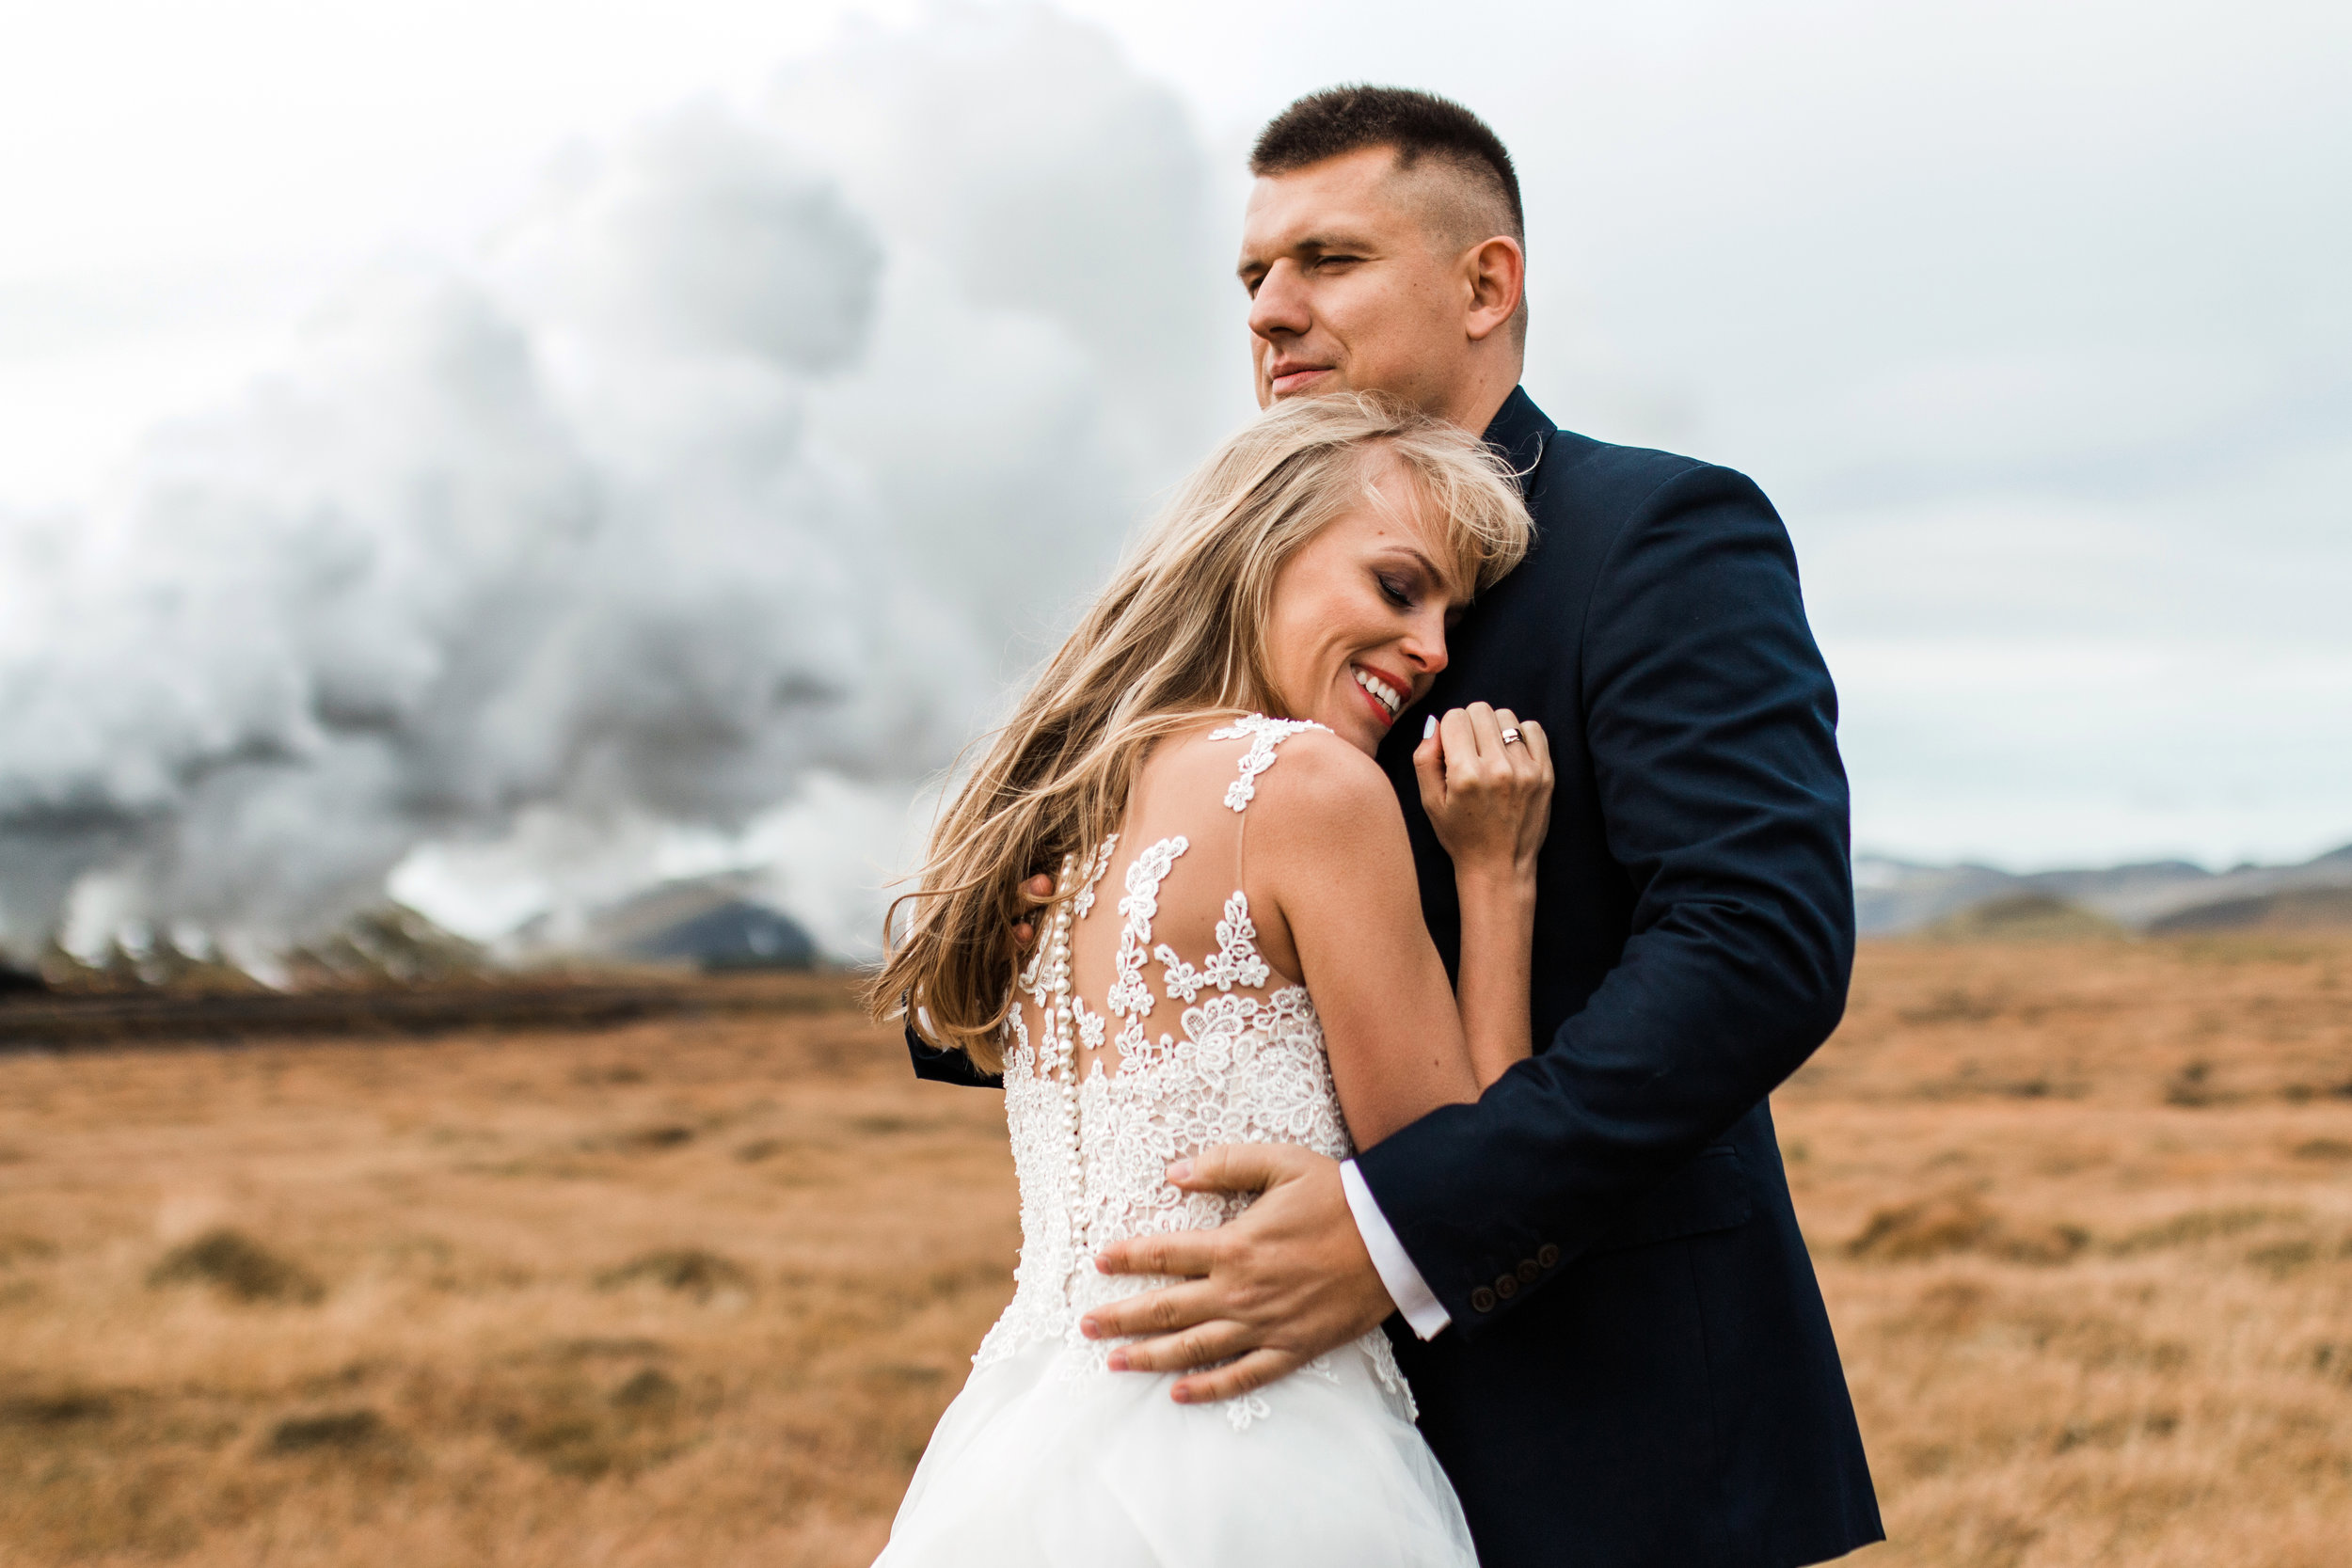 Iceland Elopement Wedding Photography | Bettina Vass Photography